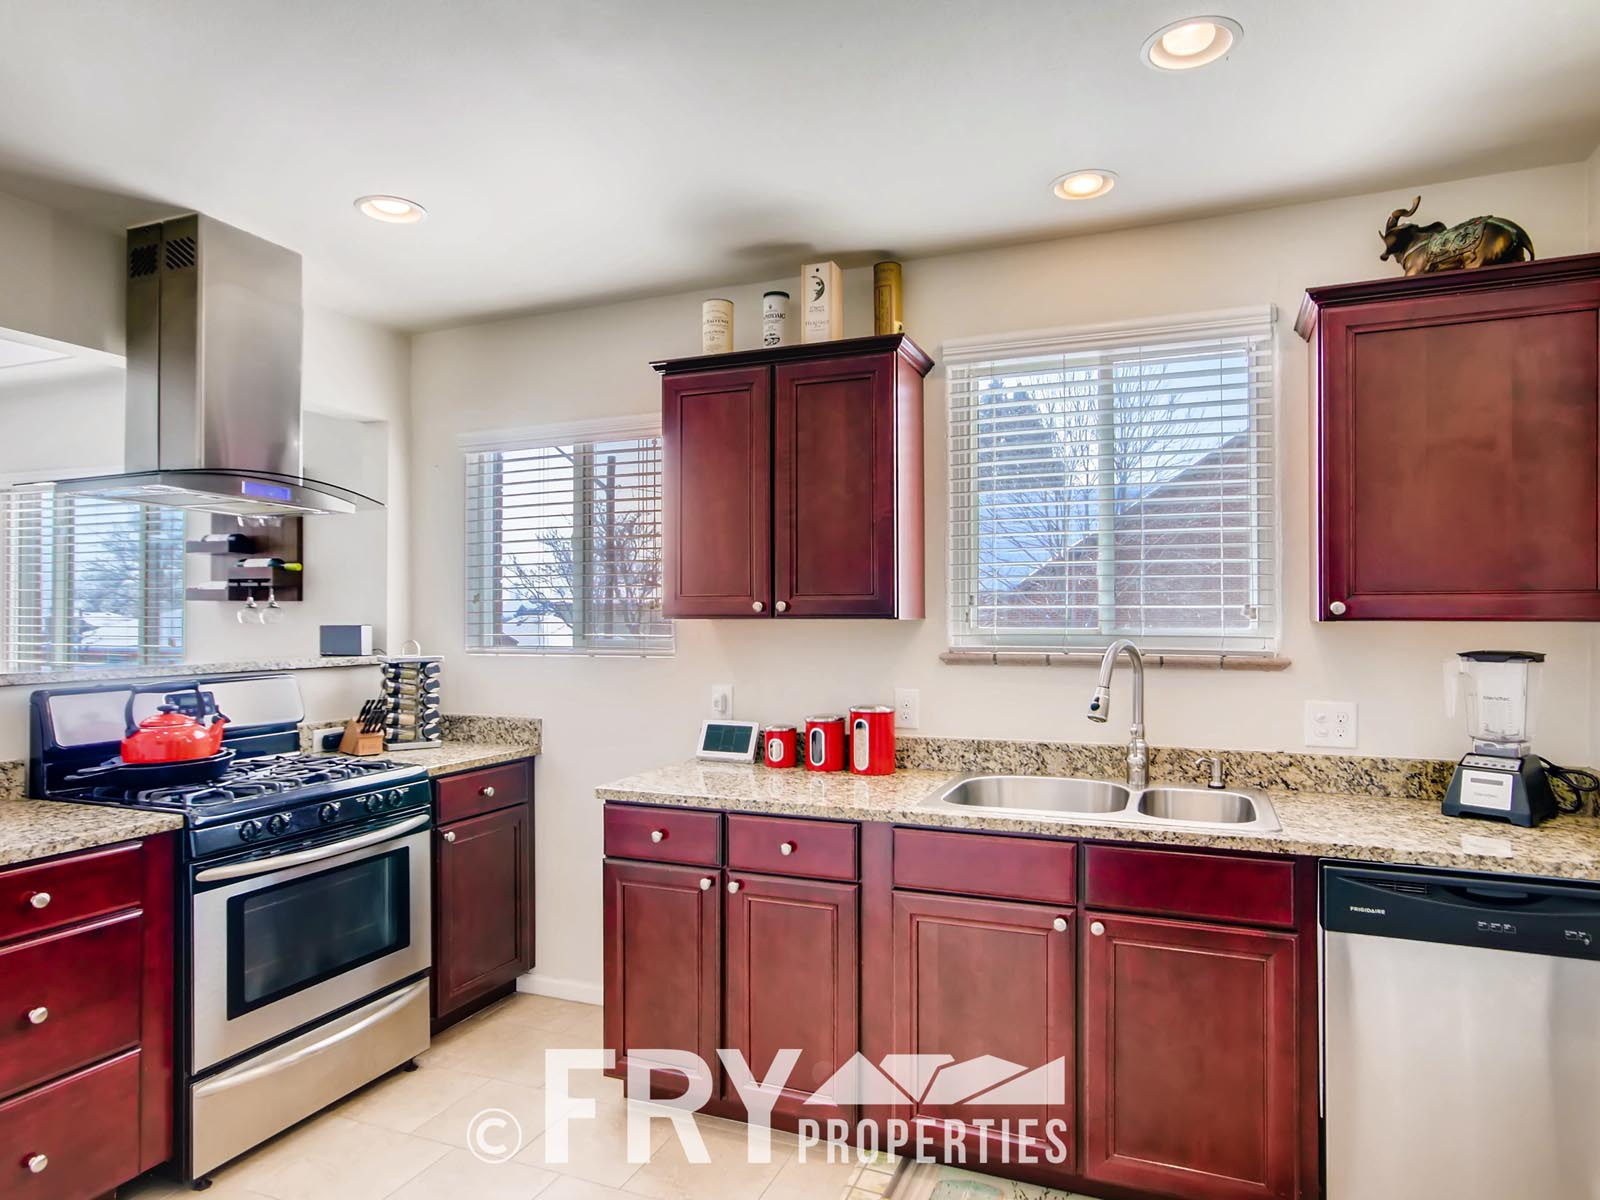 4601 Eliot St Denver CO 80211-print-009-7-Kitchen-3600x2400-300dpi